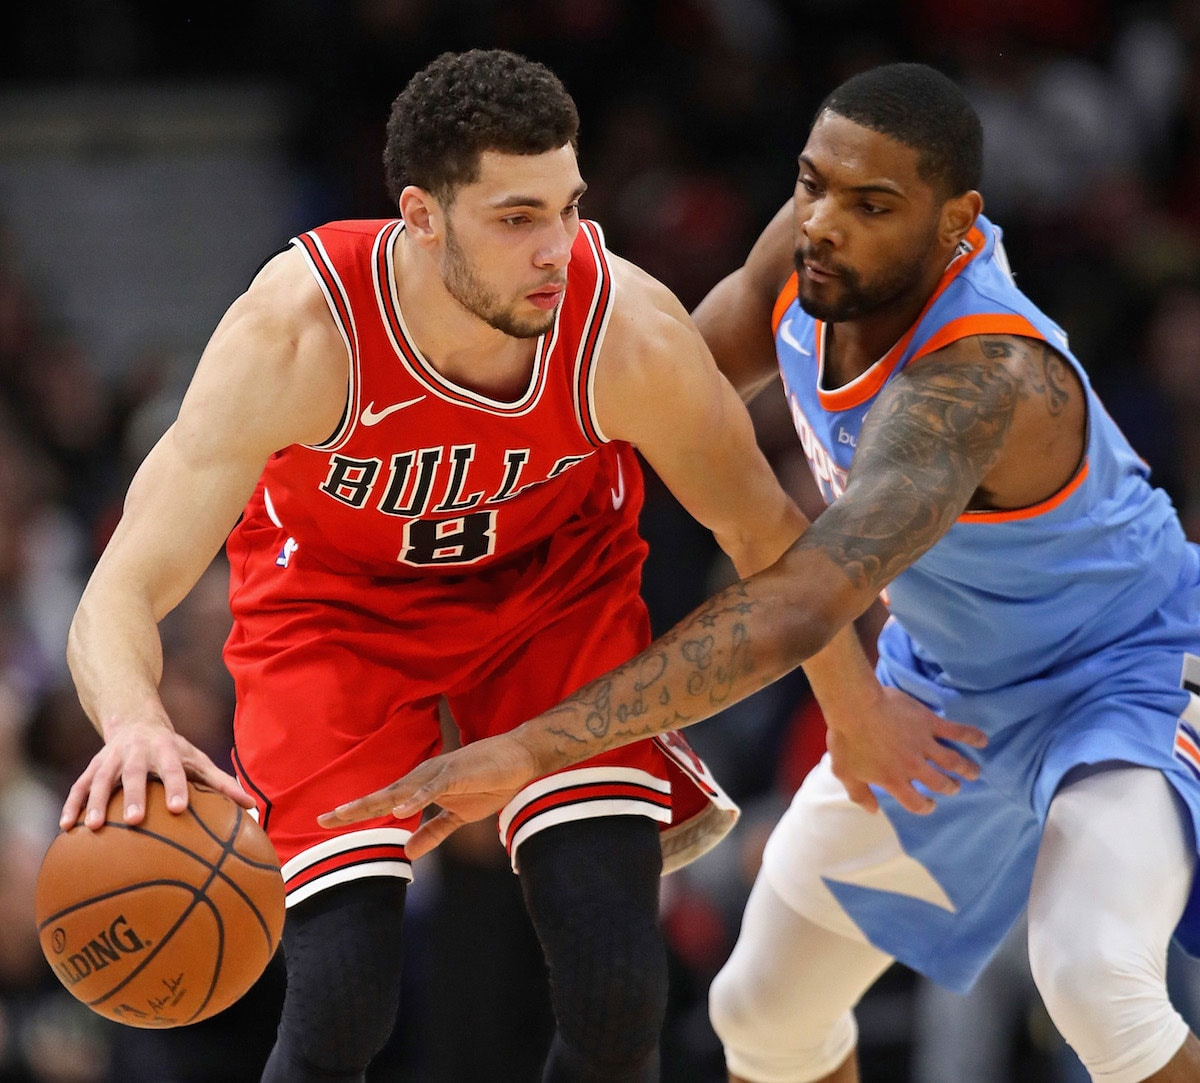 Zach LaVine #8 of the Chicago Bulls handles the ball against the LA Clippers